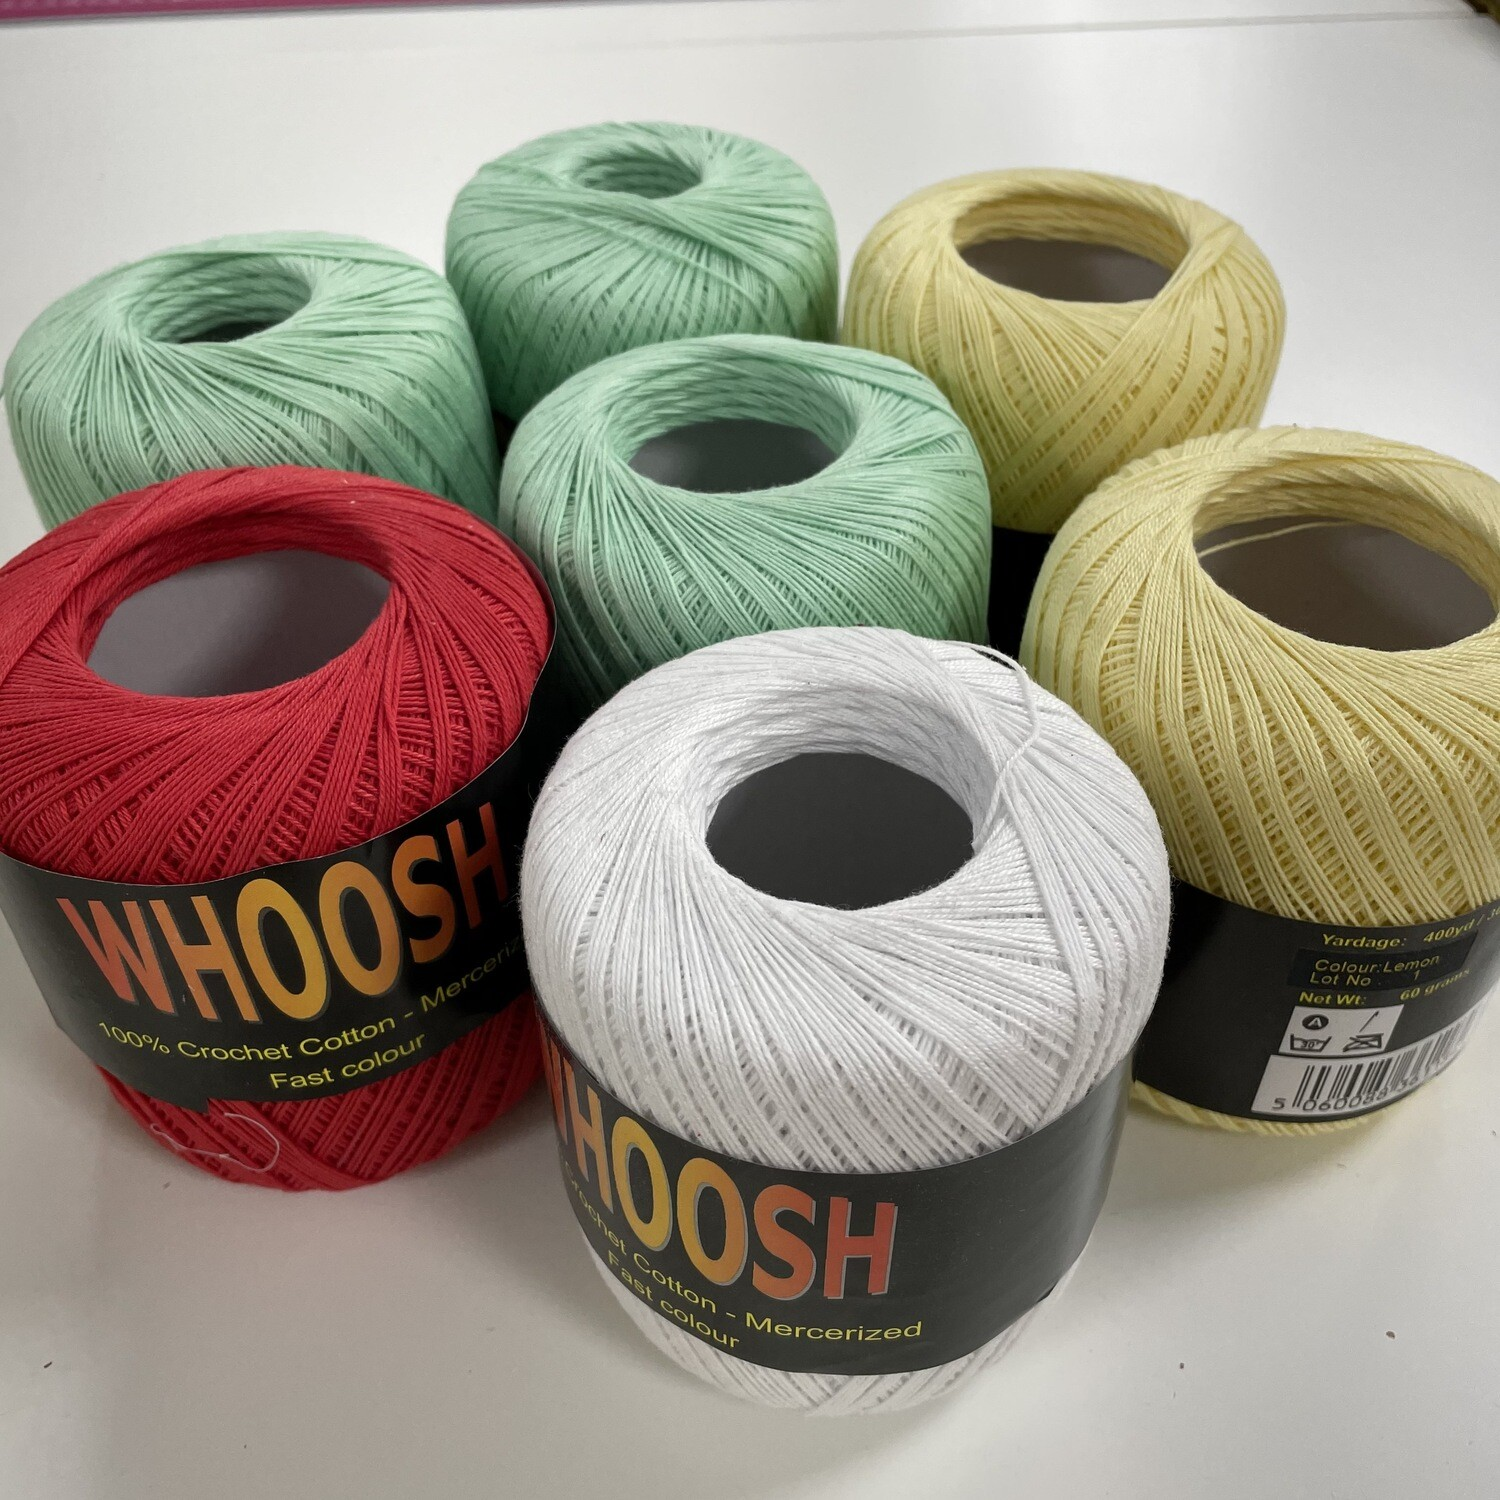 Bumper Pack of 7 - Assorted Whoosh Crochet Cotton